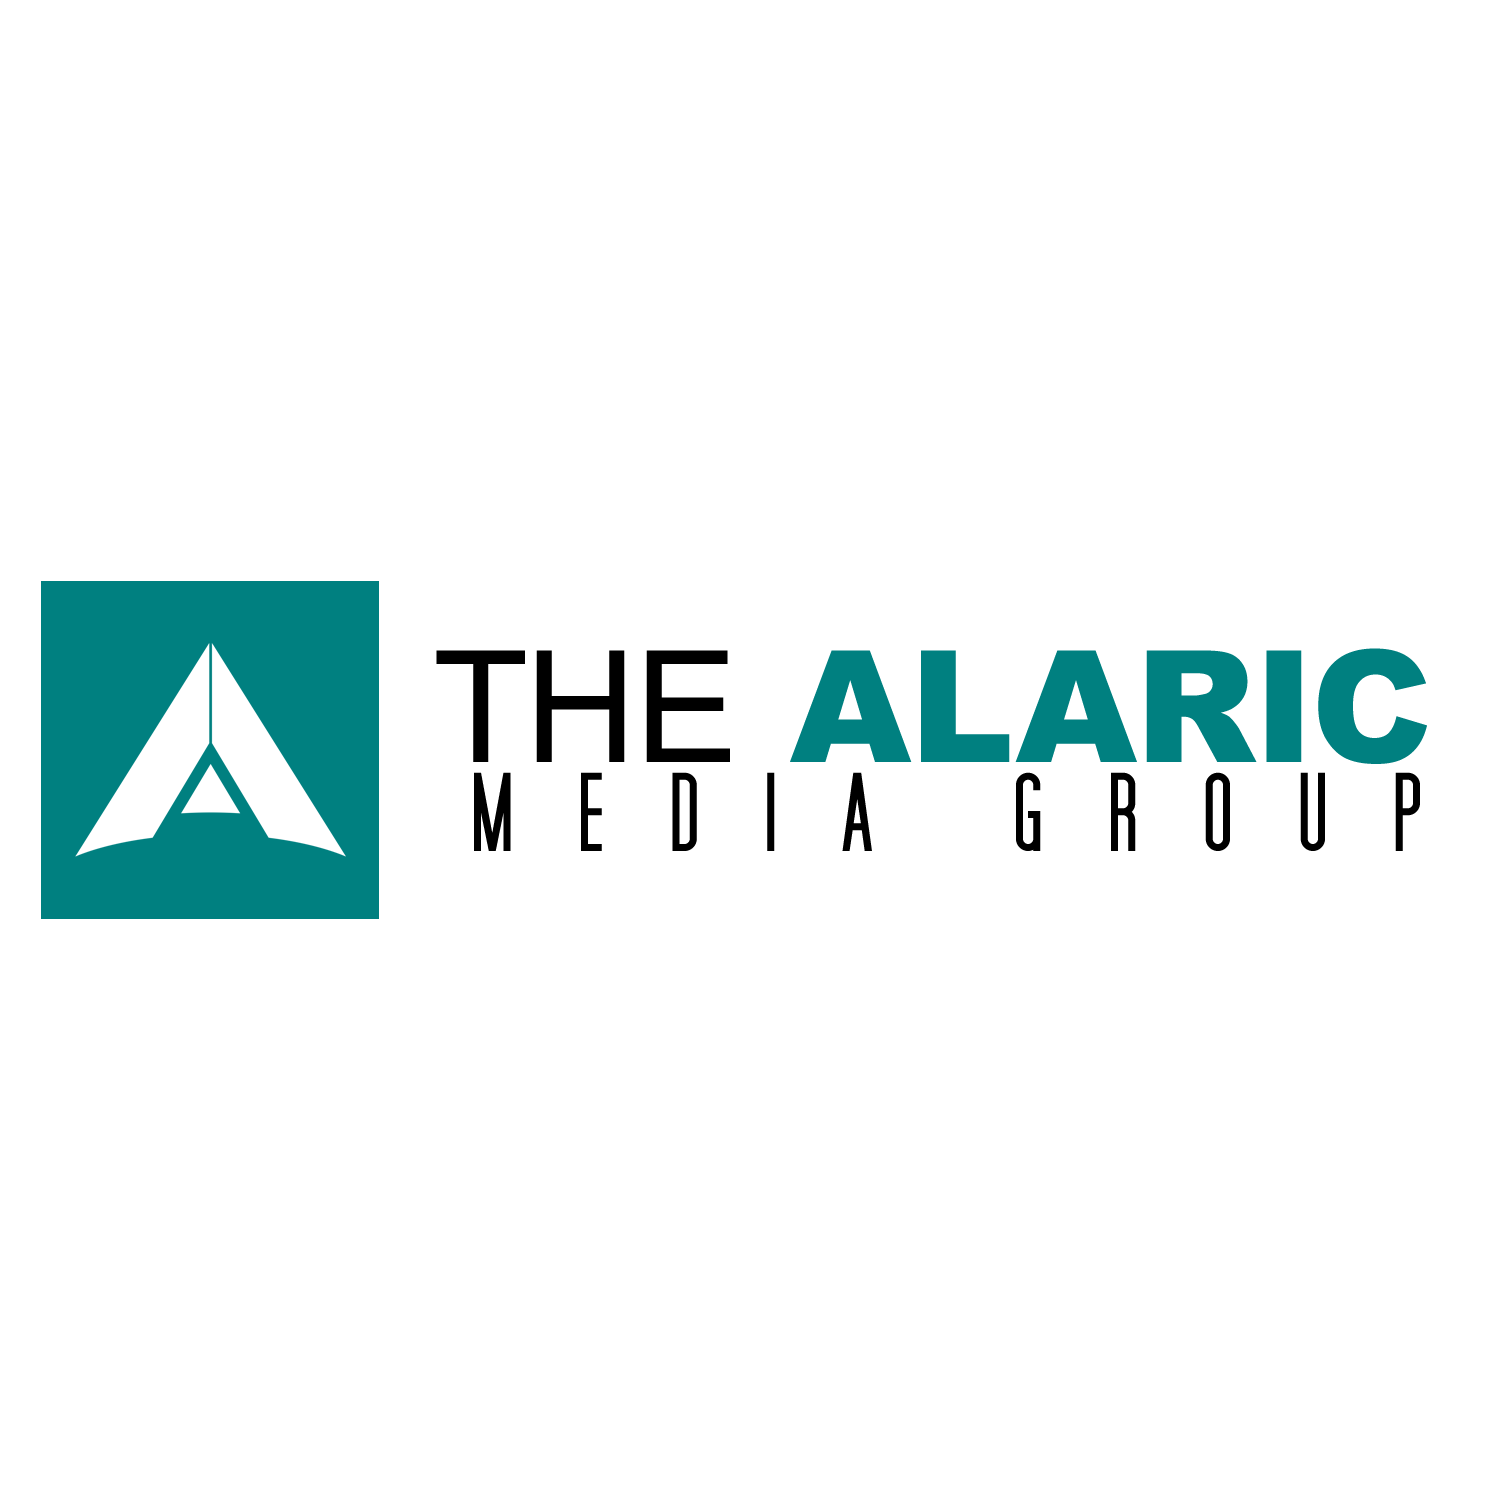 The Alaric Media Group primary image